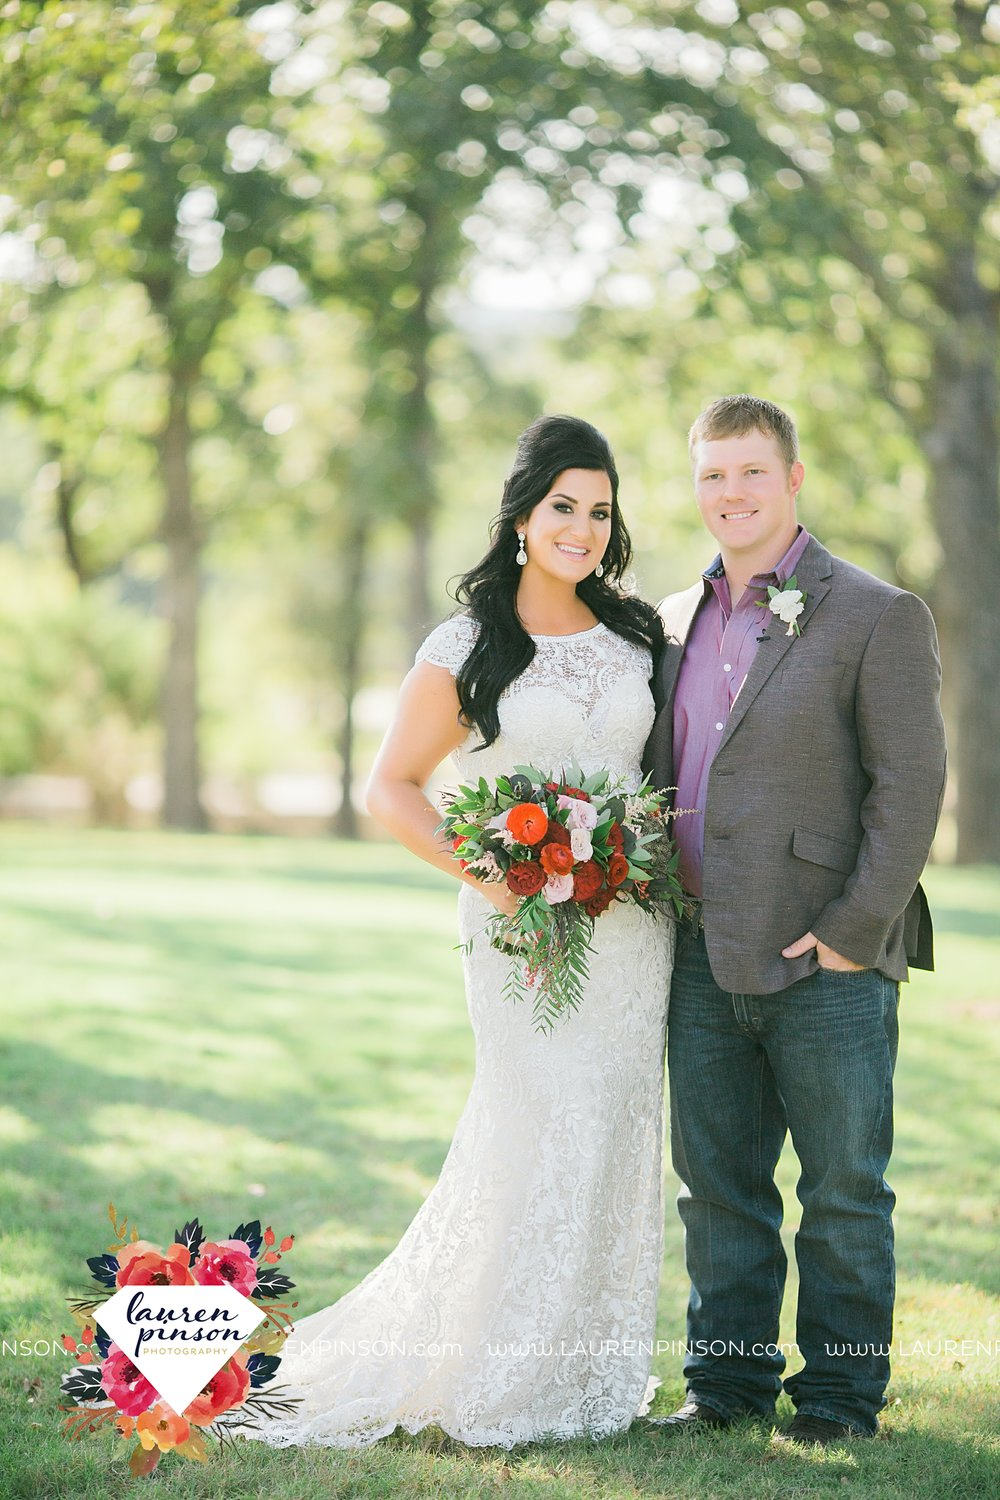 springtown-texas-wedding-at-oak-knoll-ranch-dfw-and-wichita-falls-wedding-photography-lauren-pinson_3518.jpg